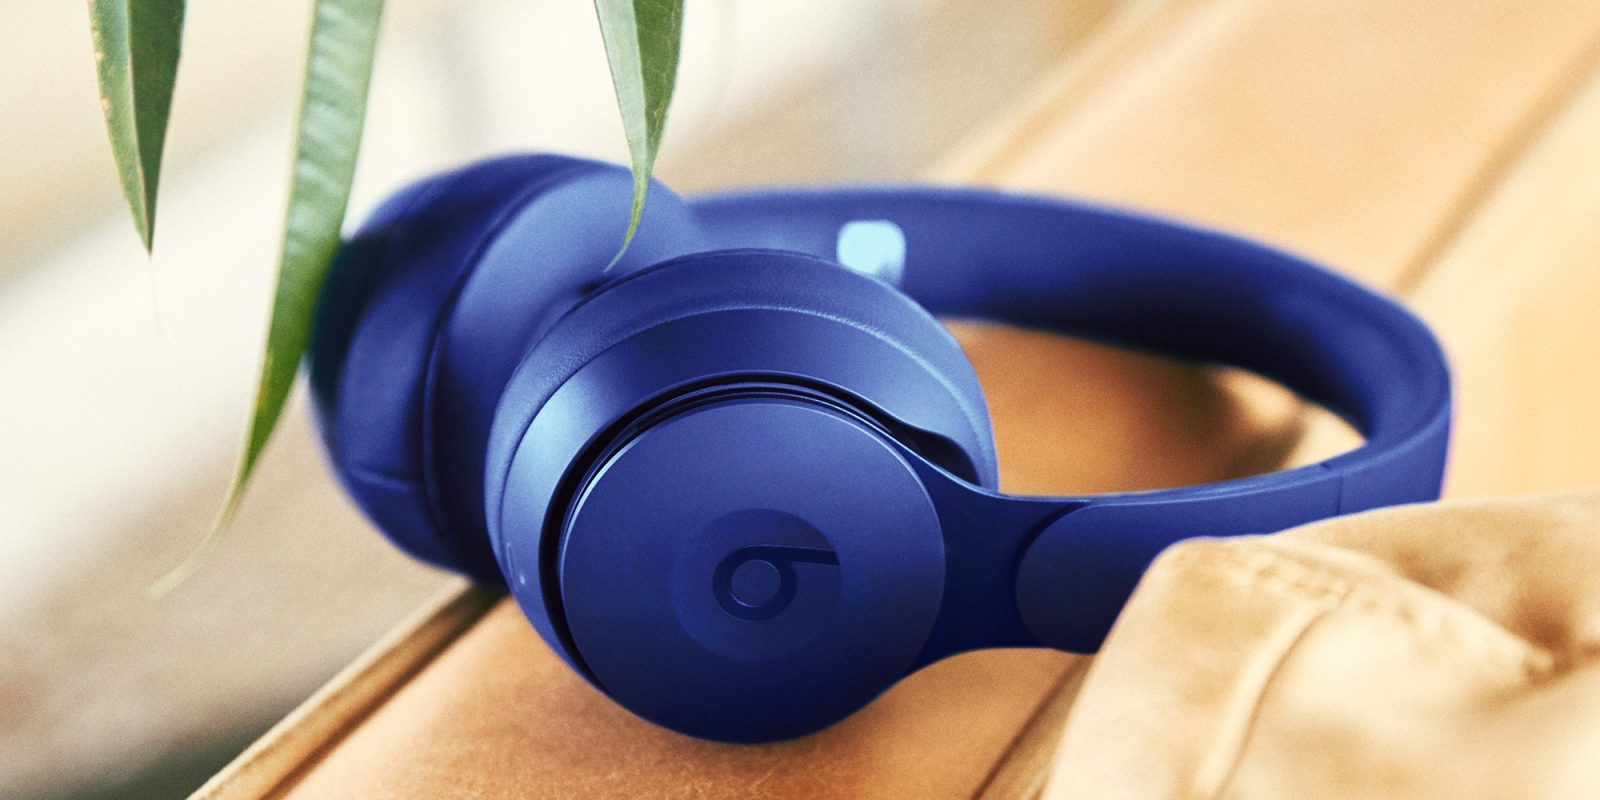 Beats Solo Pro Debut With Pure Anc Transparency Fold To Power And Apple H1 Chip Pre Order For 299 9to5mac